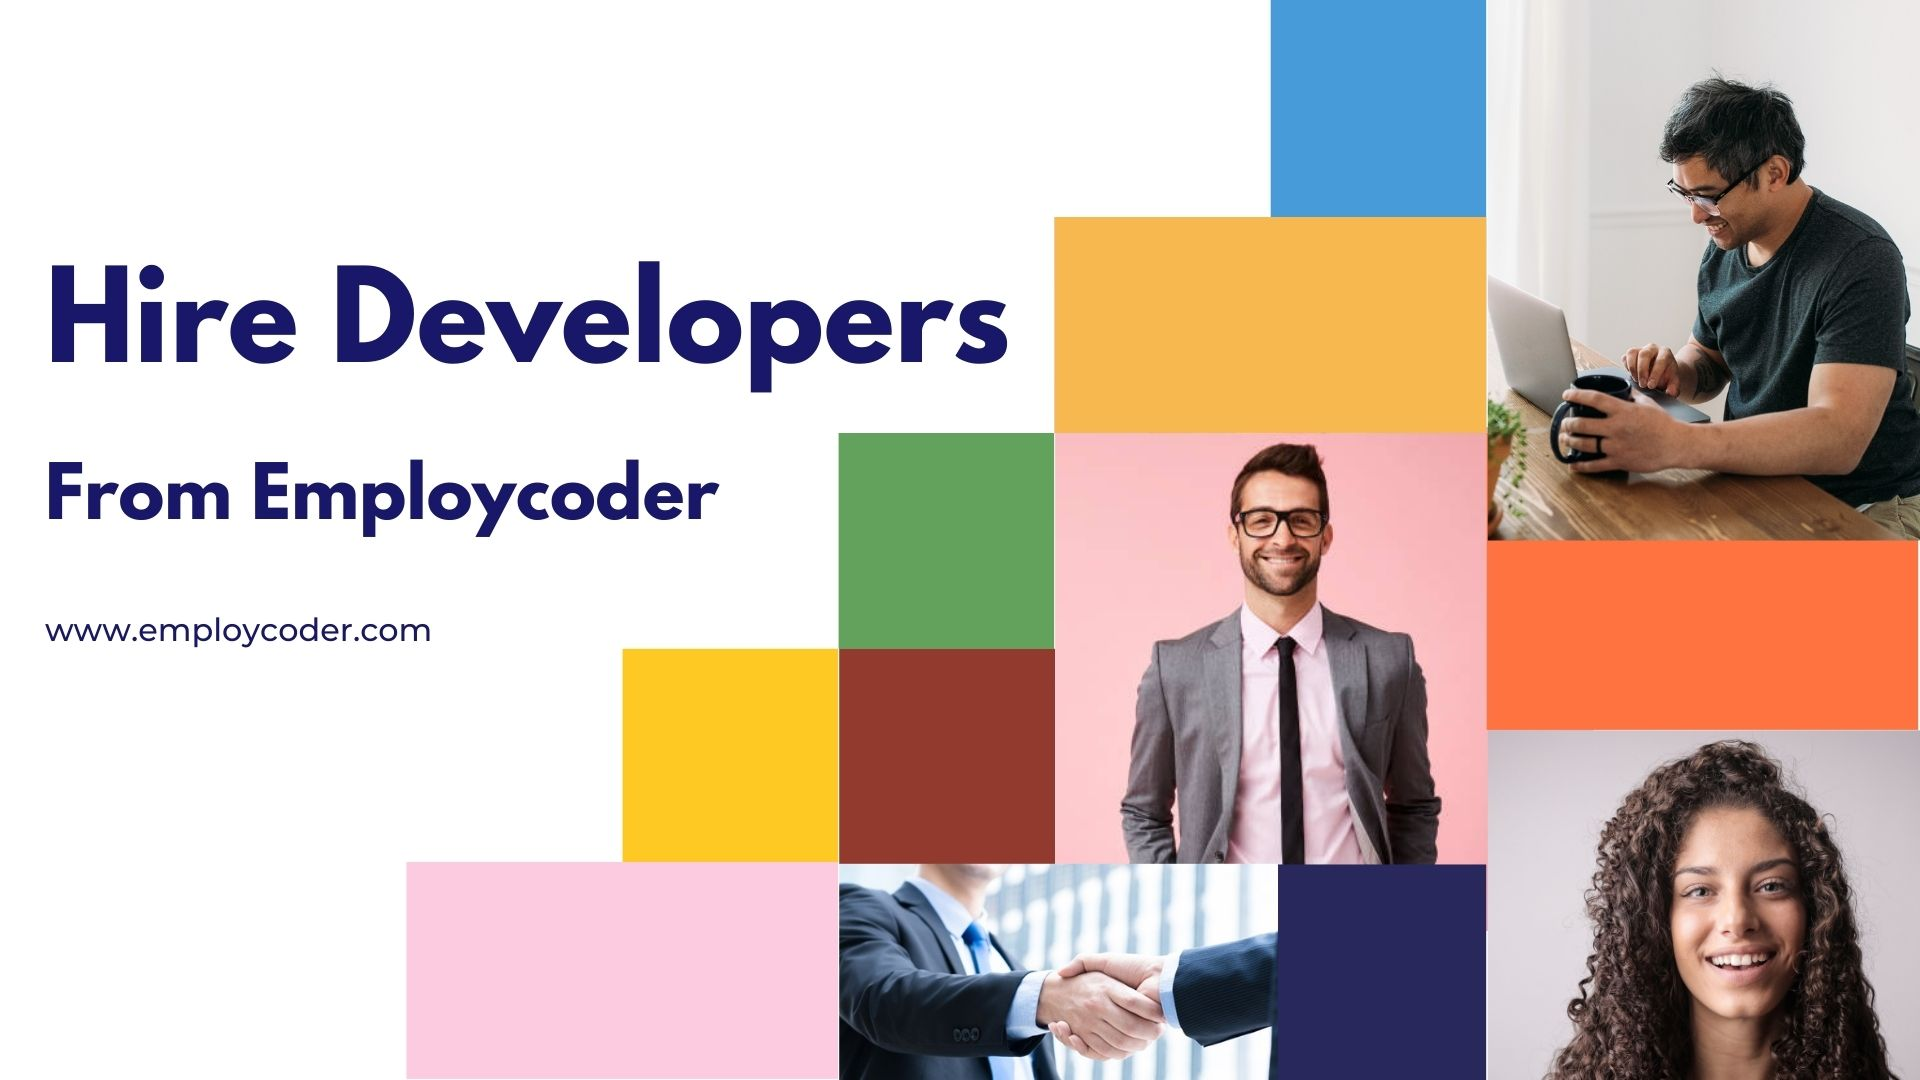 Why Should You Hire Developers From Employcoder?